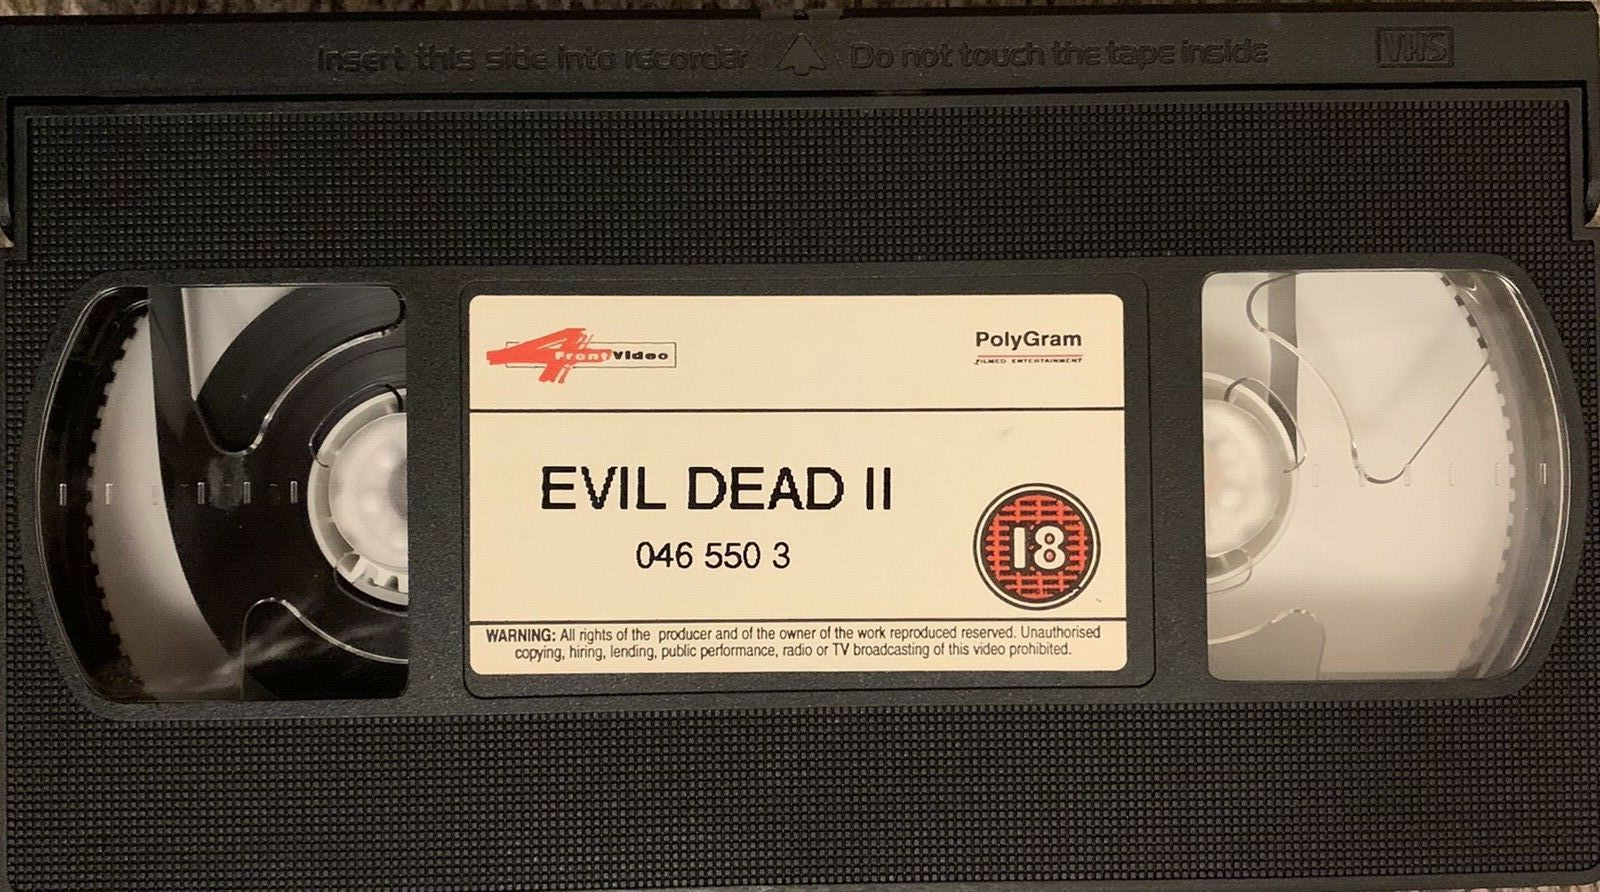 s l1600 Hail To The King, Baby! It's 10 Groovy Facts About The Evil Dead Trilogy